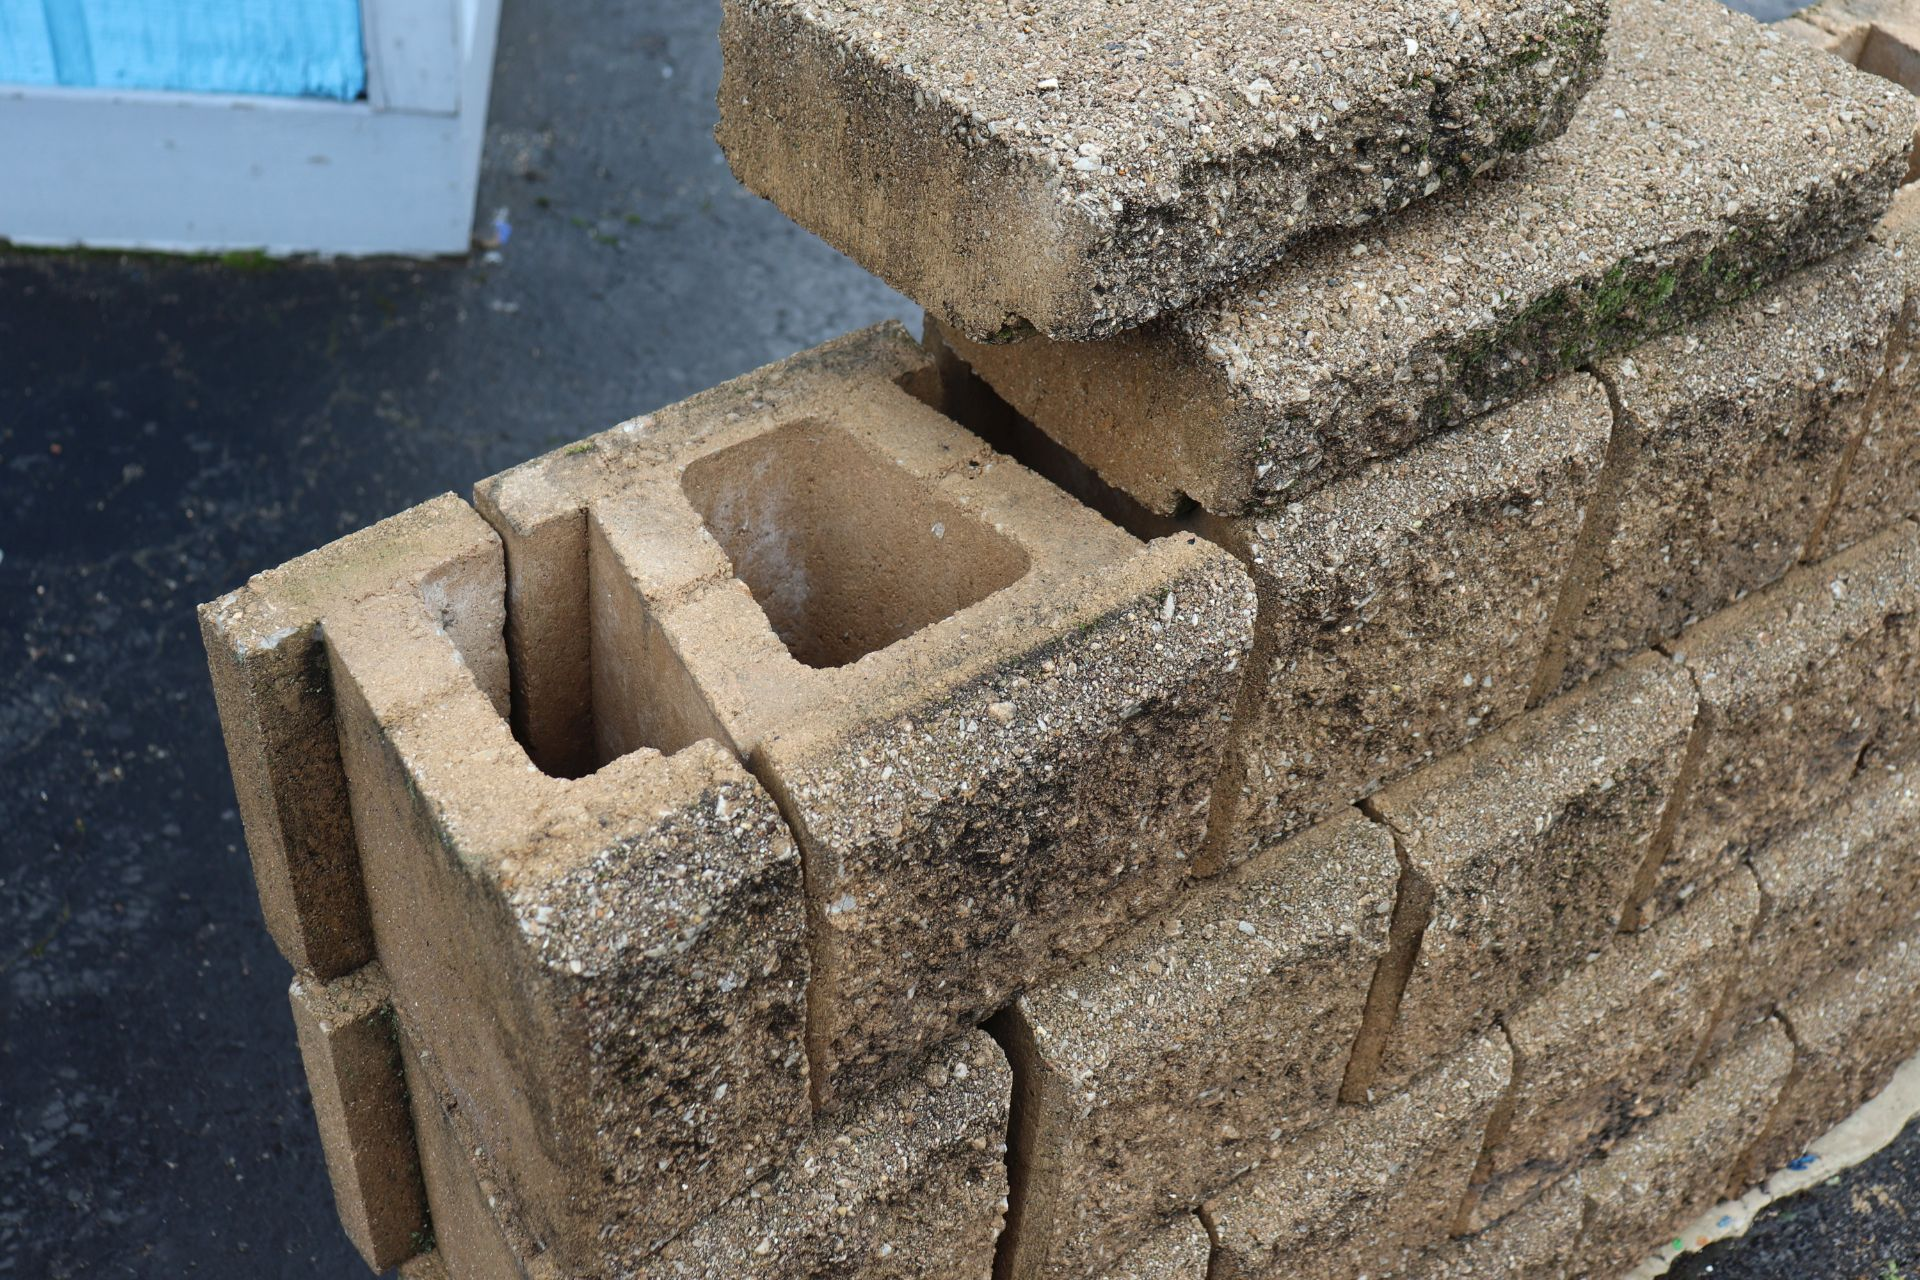 100 paver blocks with a quarter of total top blocks